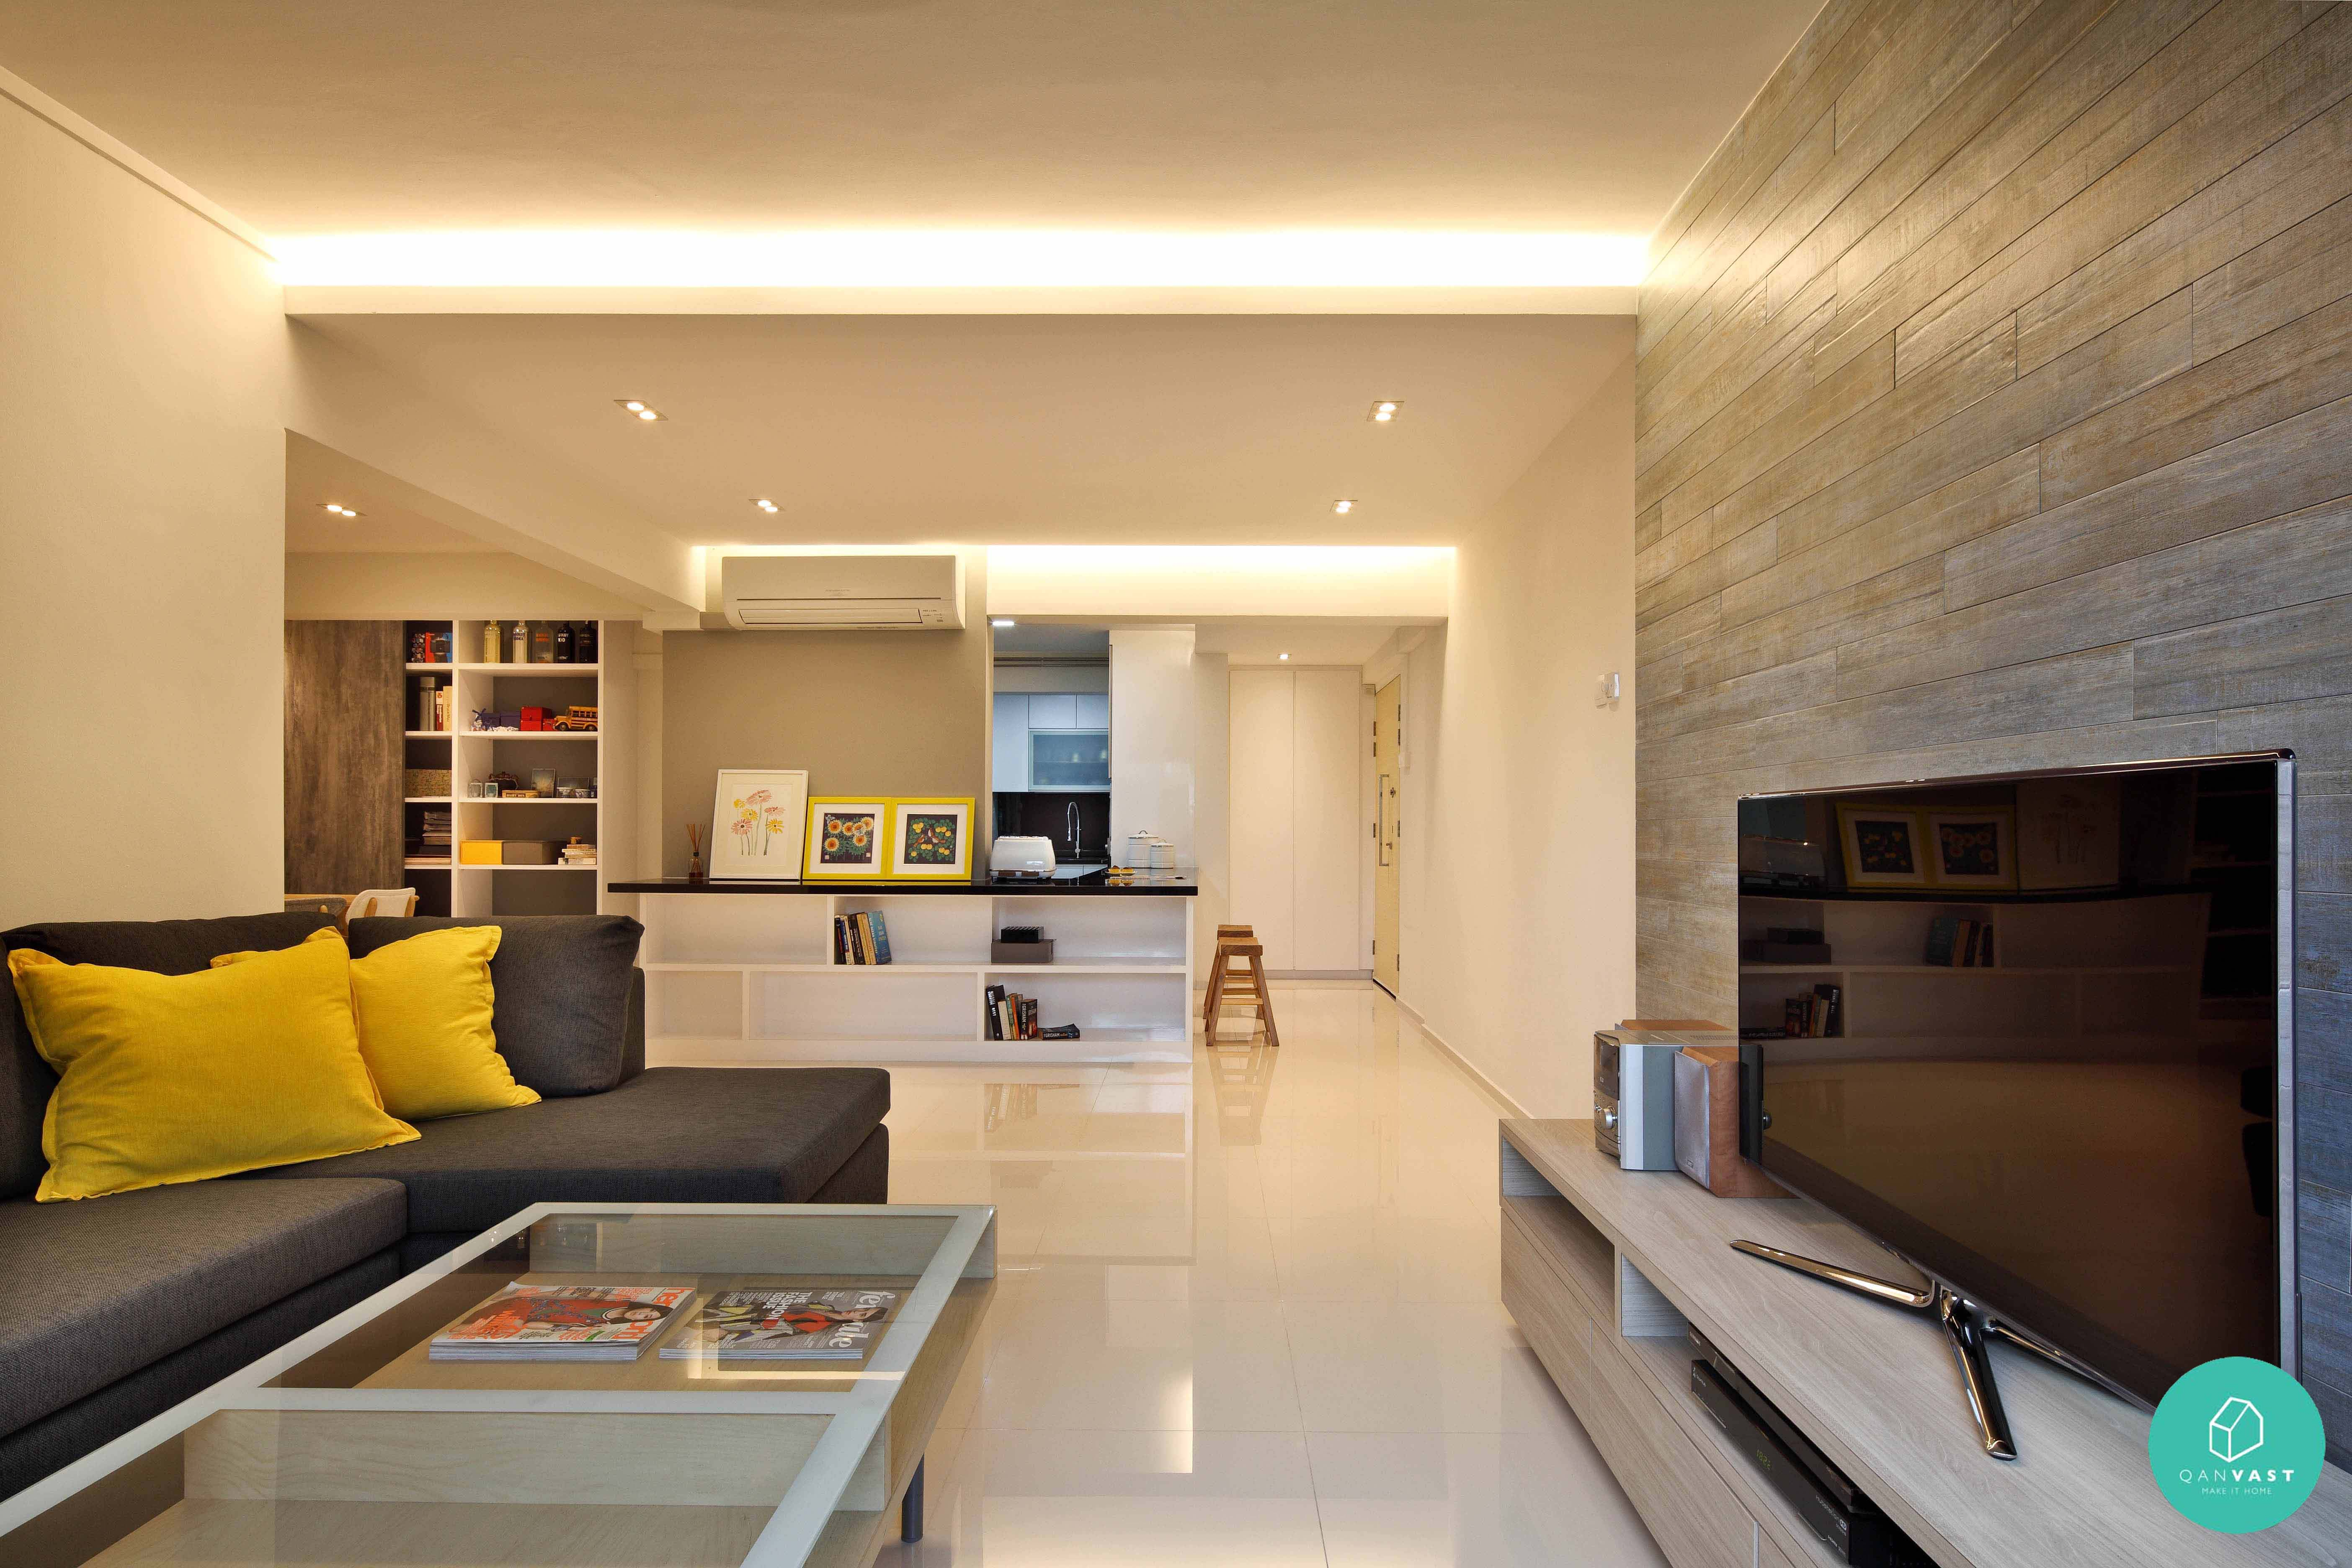 Storage wars free up space like these 10 charming homes - Condominium interior design concept ...